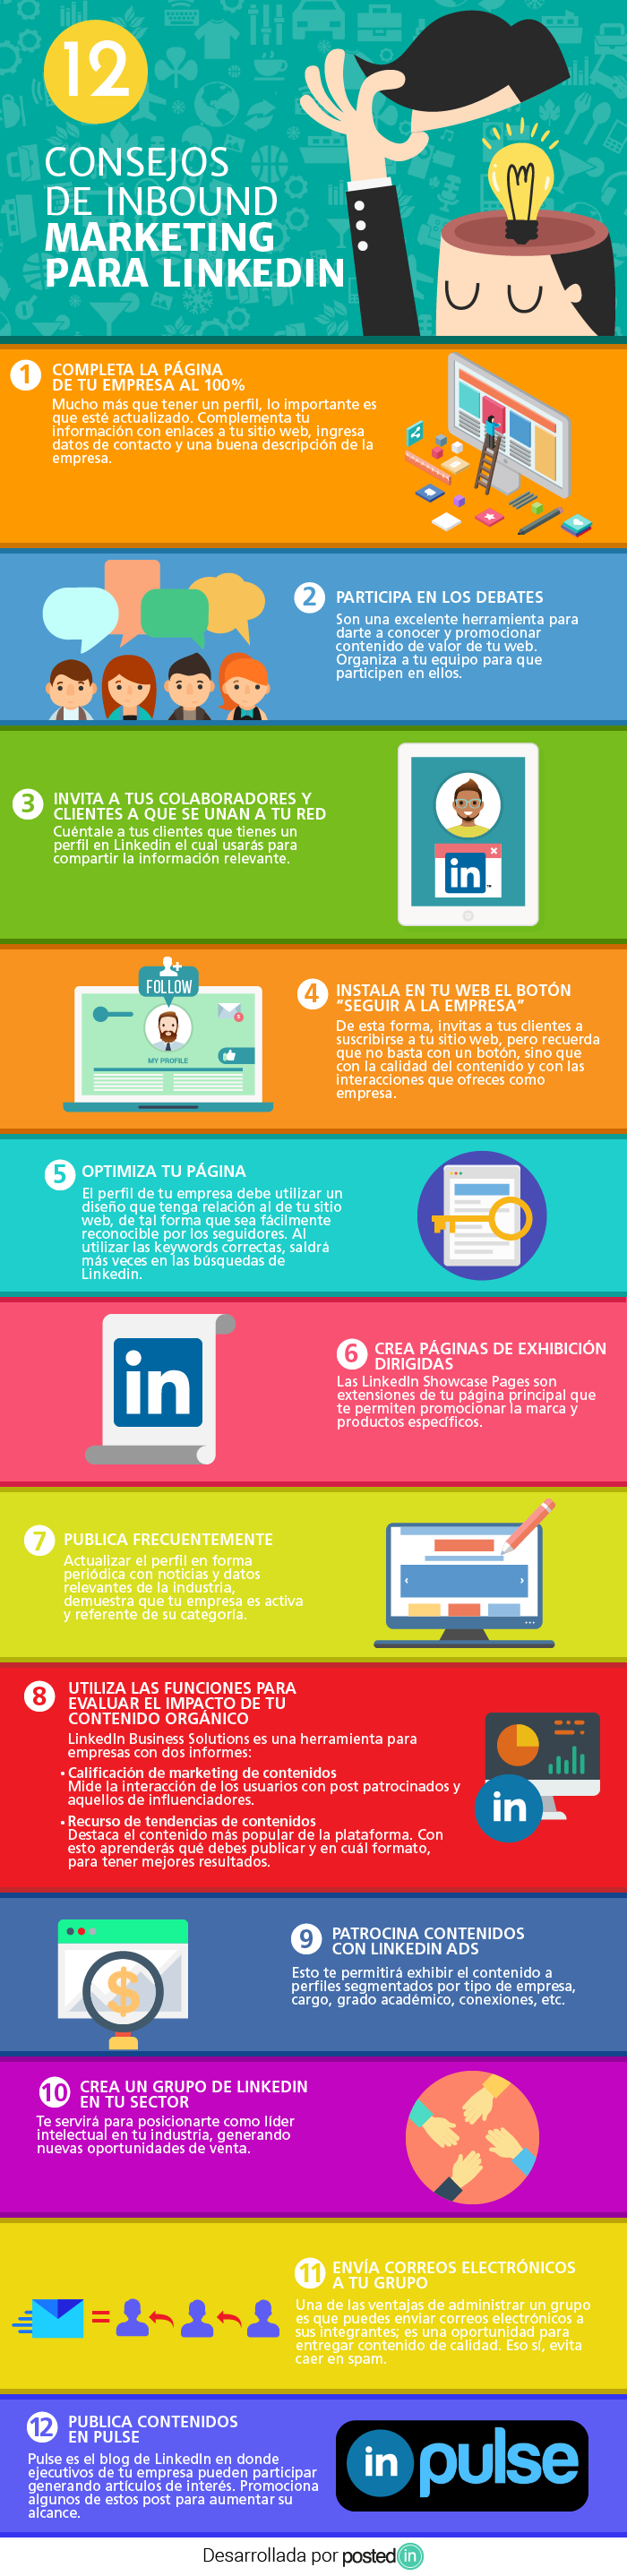 12-consejos-inboung-marketing-linkedin-infografia.png